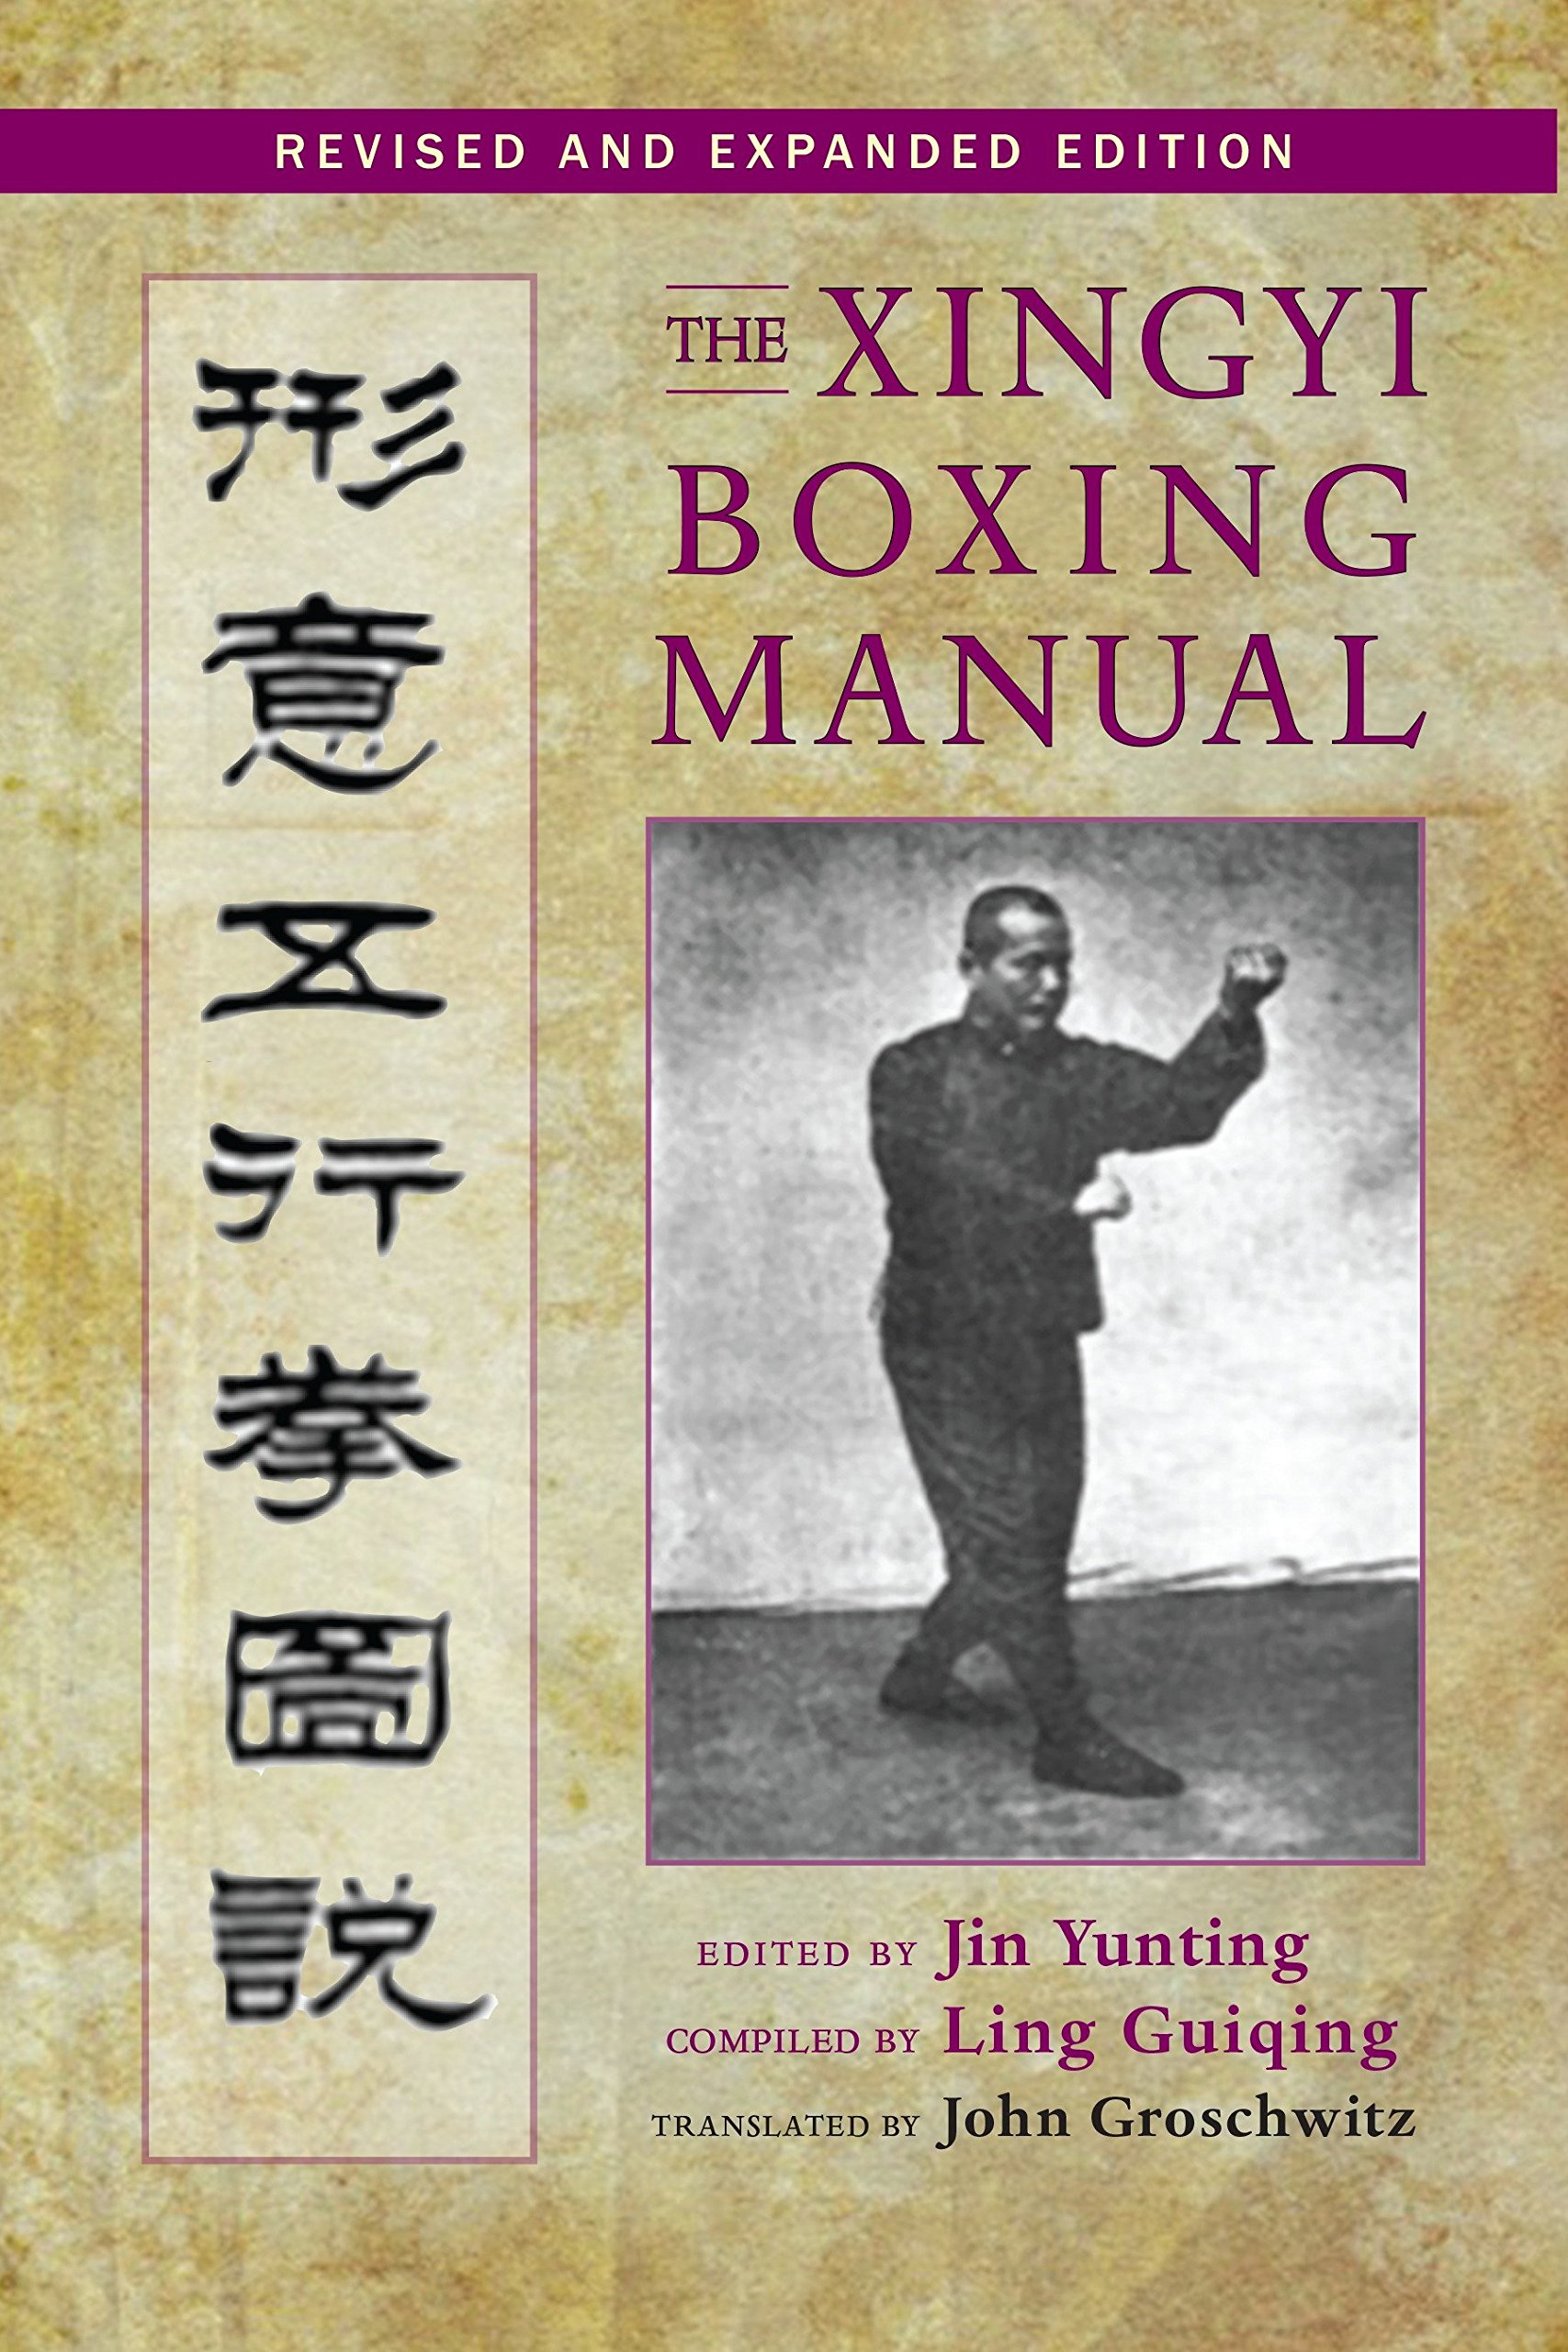 The Xingyi Boxing Manual, Revised and Expanded Edition: Jin Yunting, John  Groschwitz: 9781583948538: Amazon.com: Books